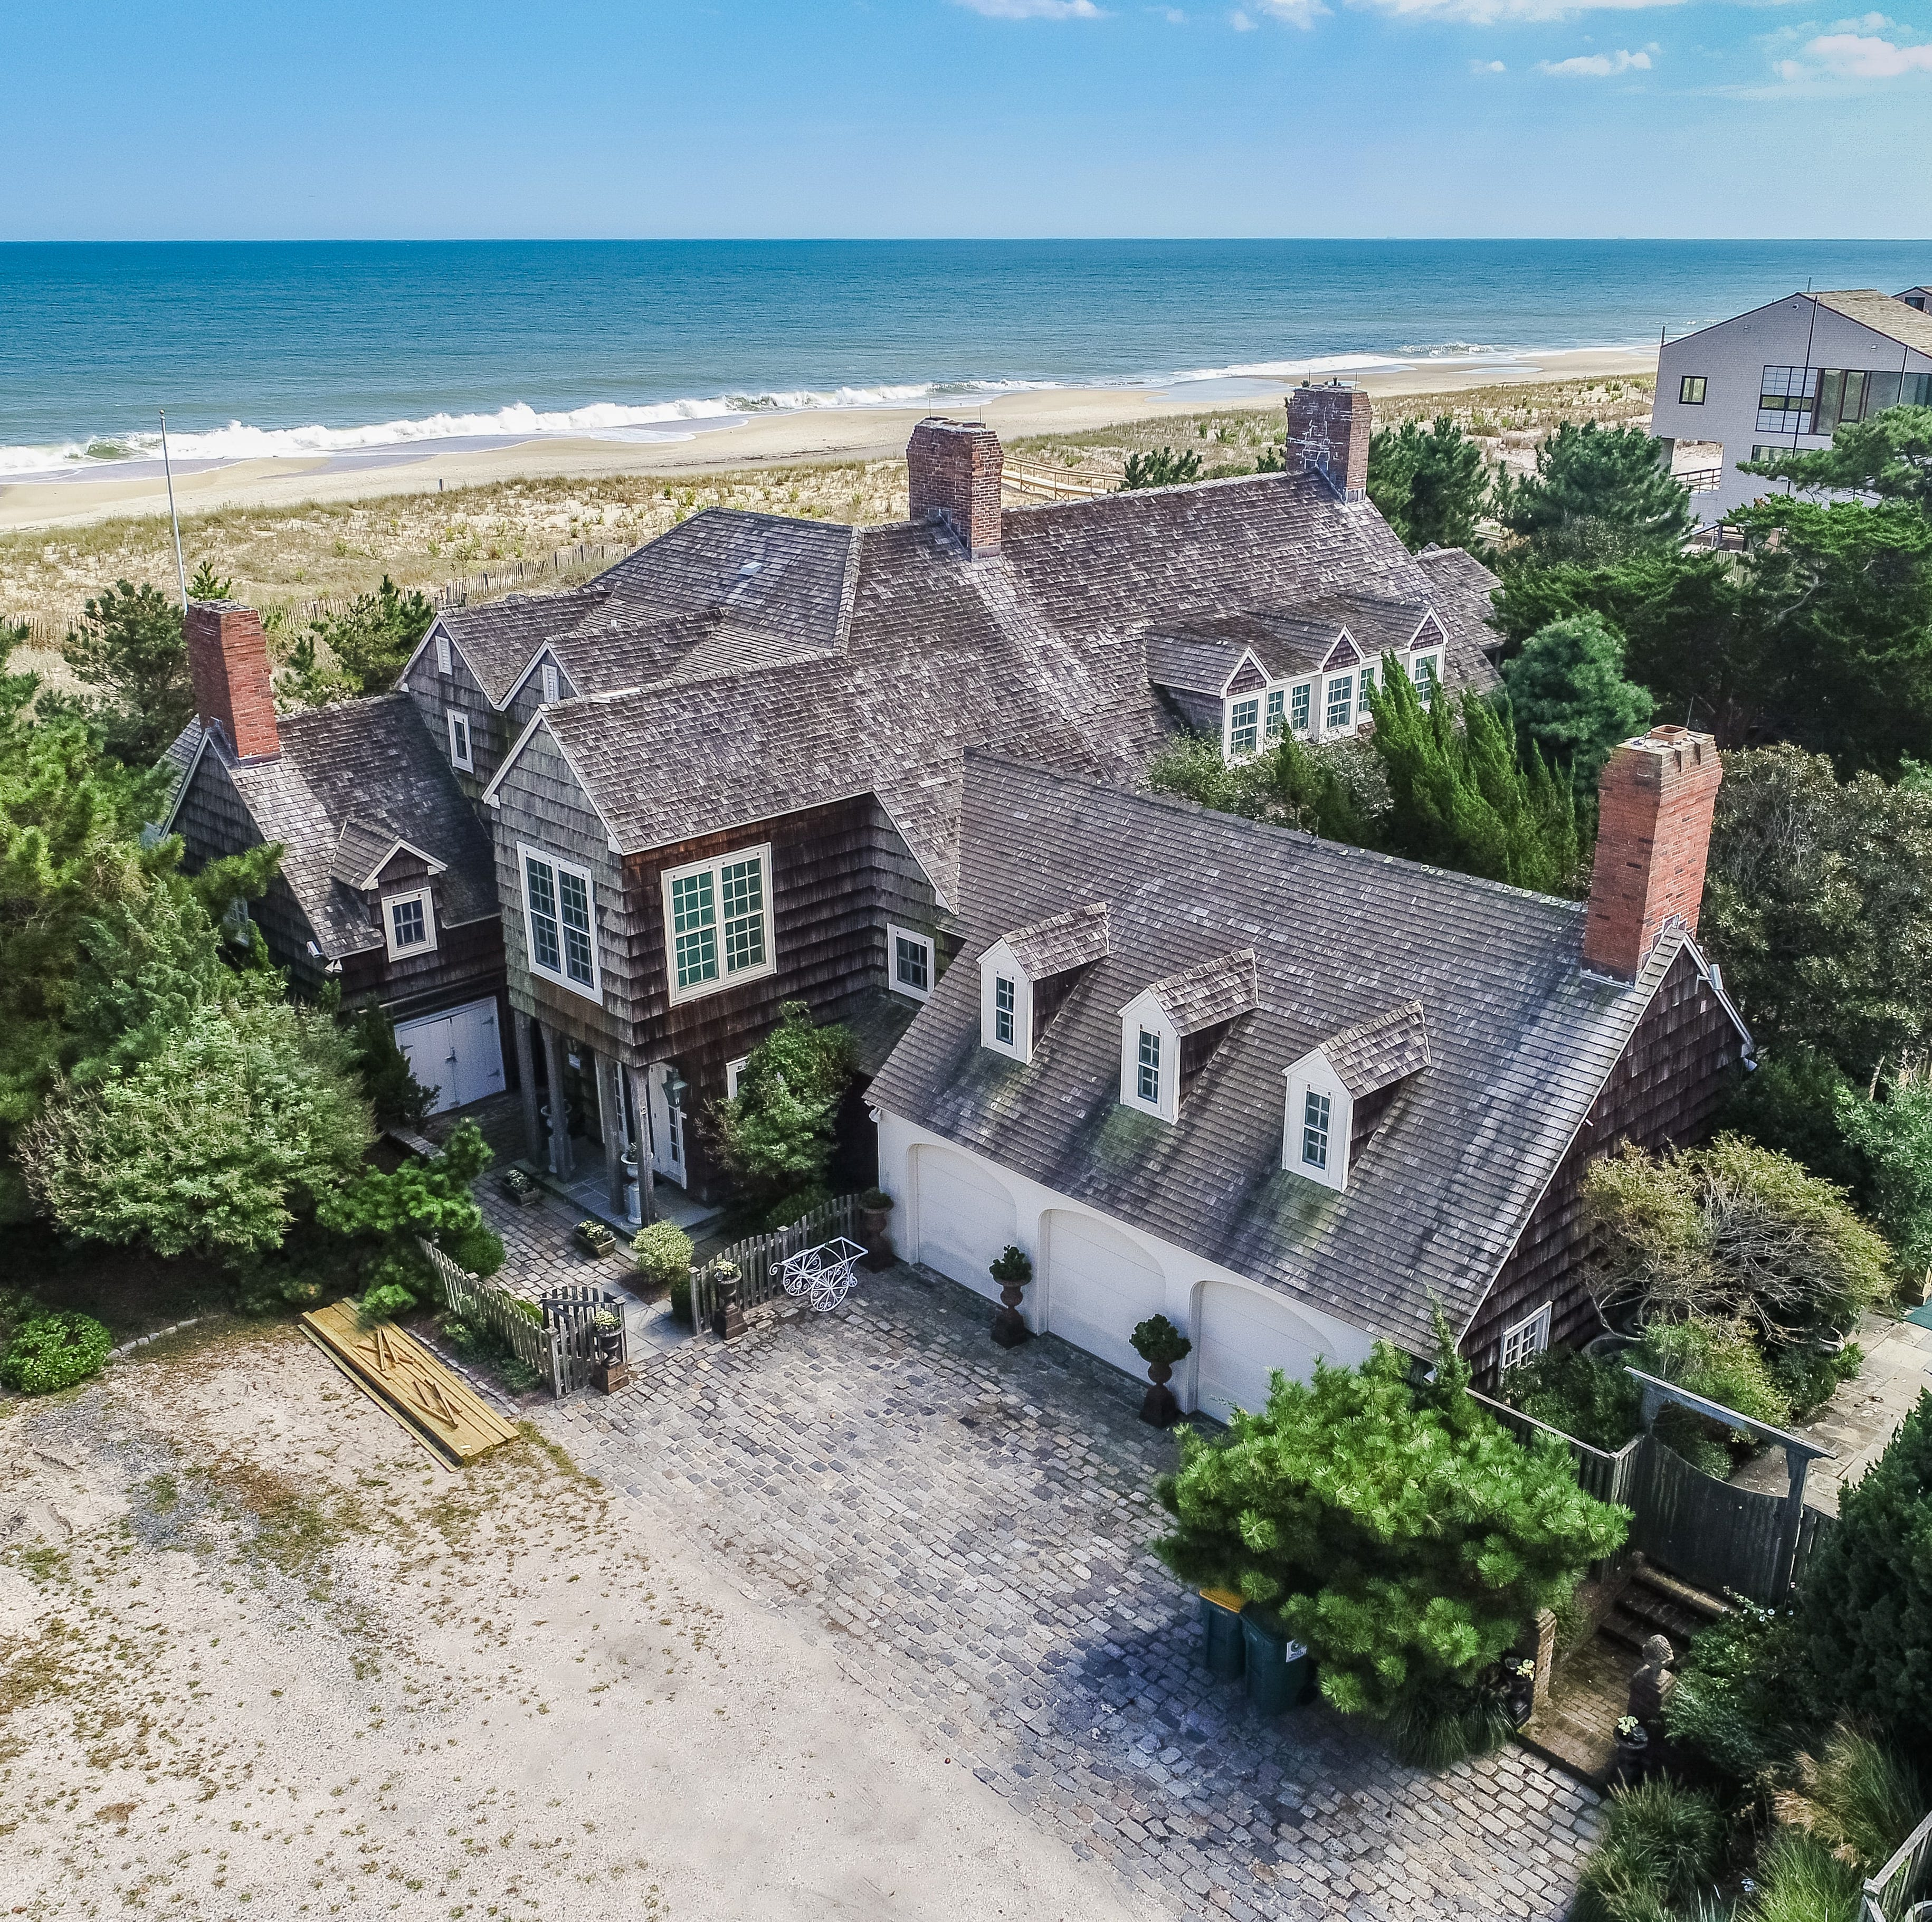 Delaware's most expensive house on market: Rehoboth Beach home has ties to wealth, history